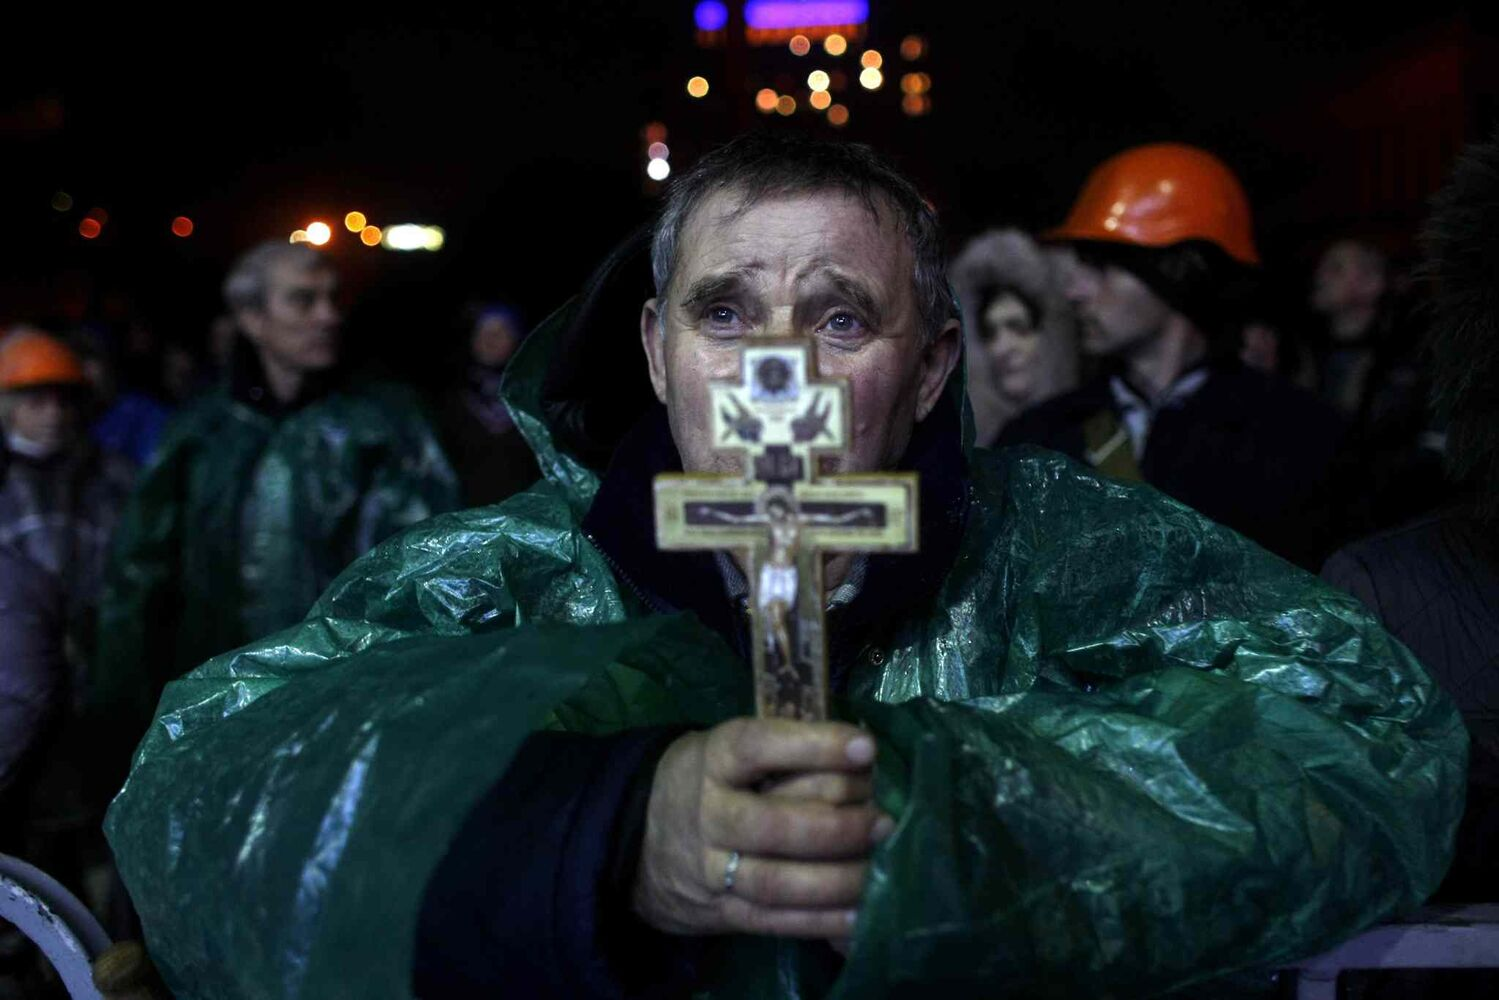 "An anti-government protester holds a crucifix as he prays at Independence Square in Kyiv, Ukraine. Ukraine's protest leaders and the president they aim to oust called a truce Wednesday, just hours after the military raised fears of a widespread crackdown with a vow to defeat ""terrorists"" responsible for seizing weapons and burning down buildings. (Marko Drobnjakovic / The Associated Press)"